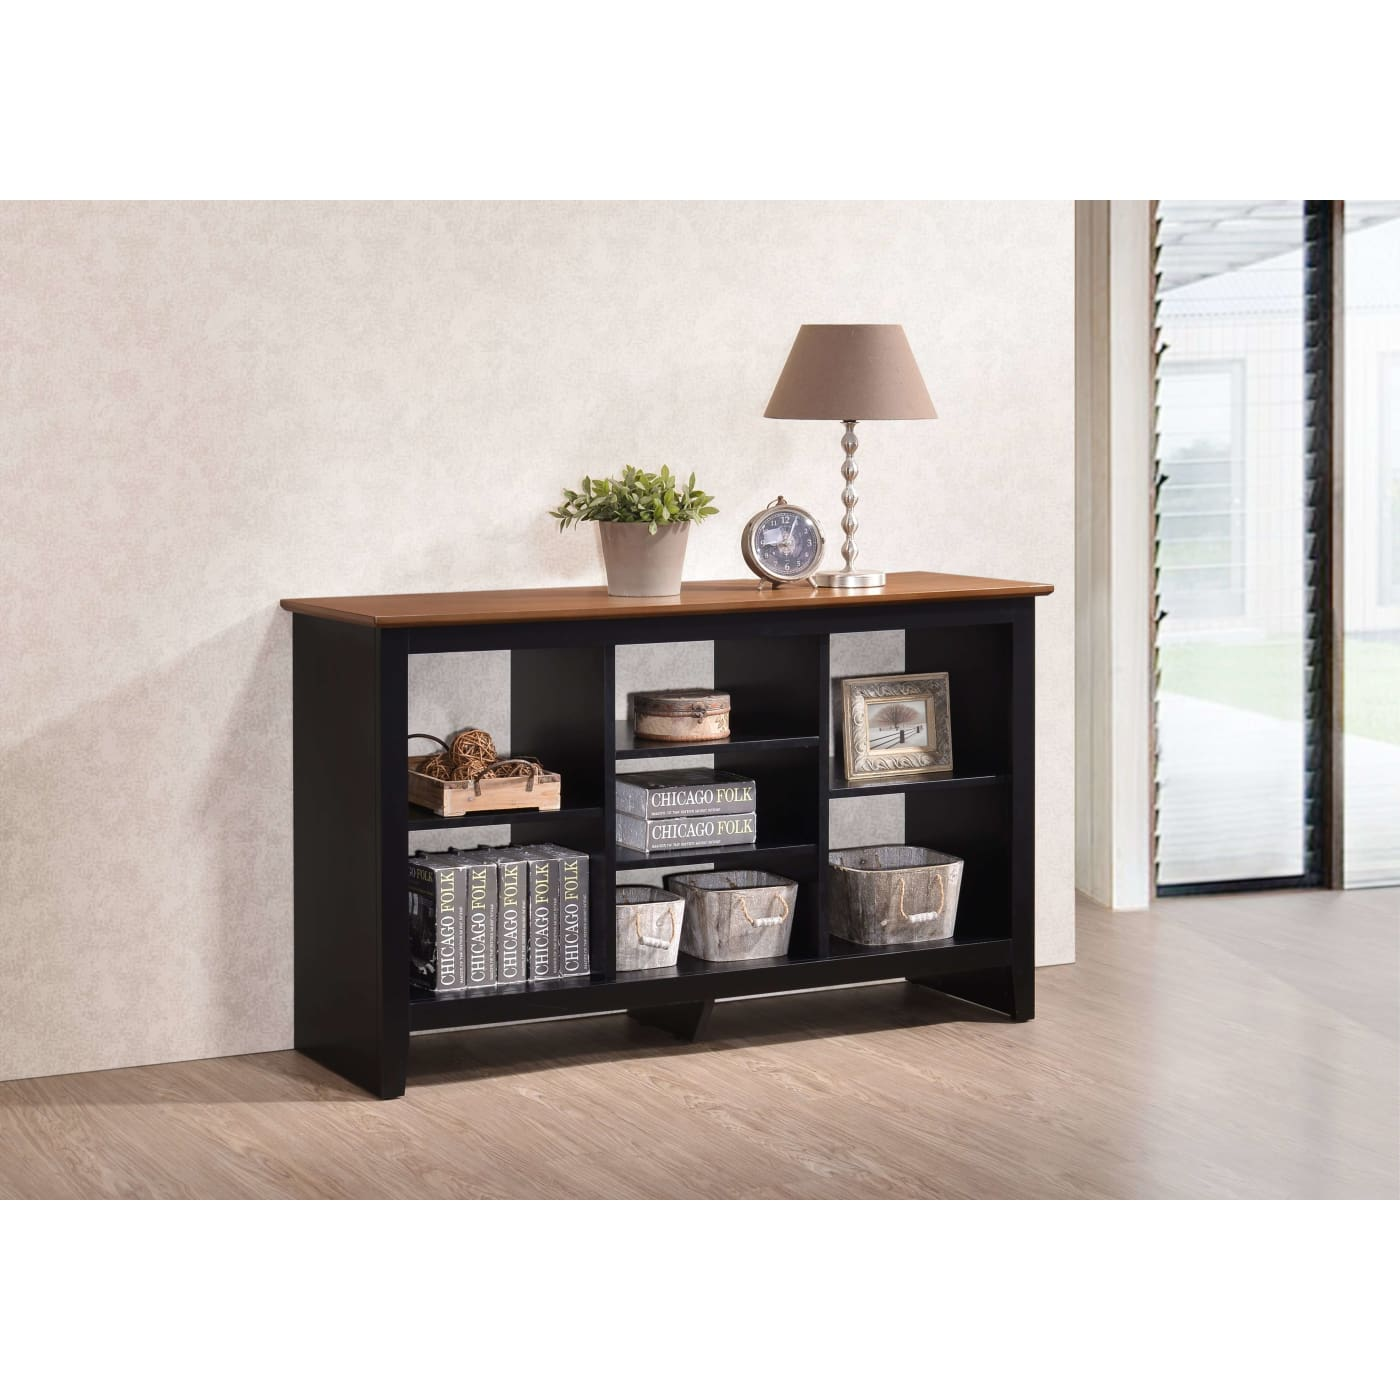 Incroyable Images Are For Reference Only. Please See Product Specifications For  Detailed Product Information. Furniture Colors May Vary Based On Computer  Monitor And ...